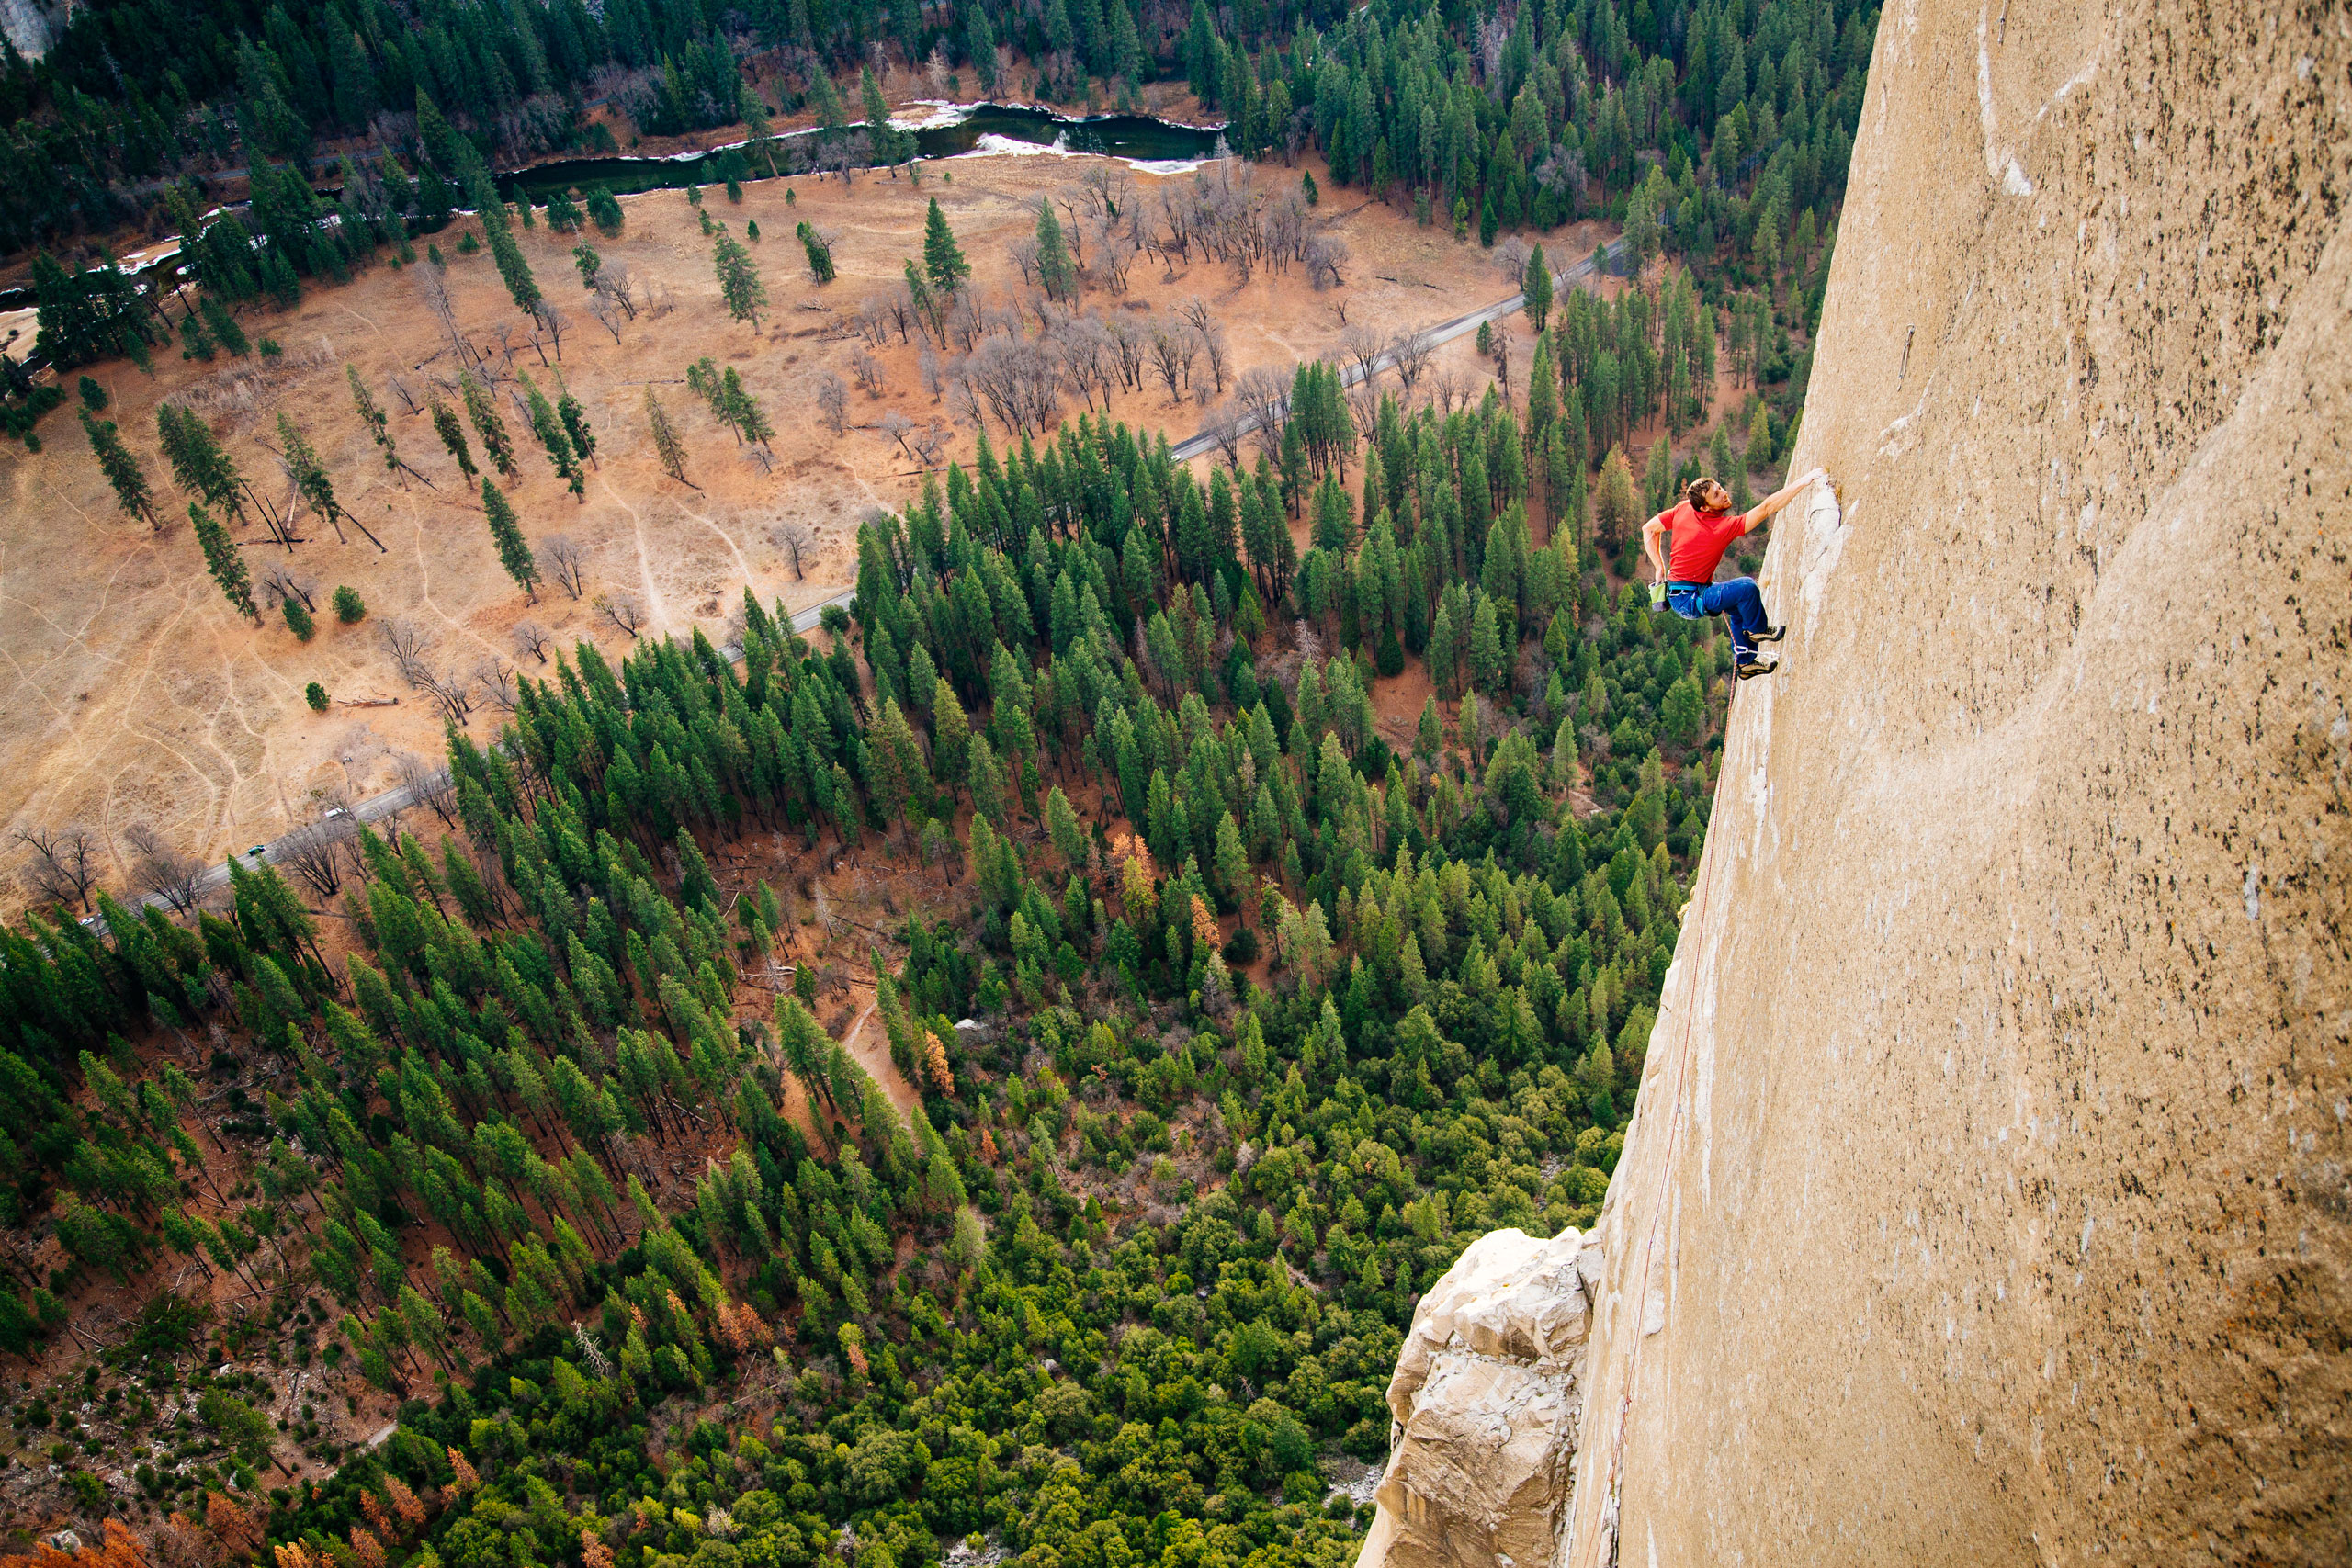 2015: The Dawn Wall meets its match                                                              In January 2015, some 45 years after Warren Harding first established the Dawn Wall route, Tommy Caldwell and Kevin Jorgeson summited without rope assistance. Their free climb took 19 days. The Dawn Wall is considered by some in the climbing community to be the most challenging route to free climb in the world.